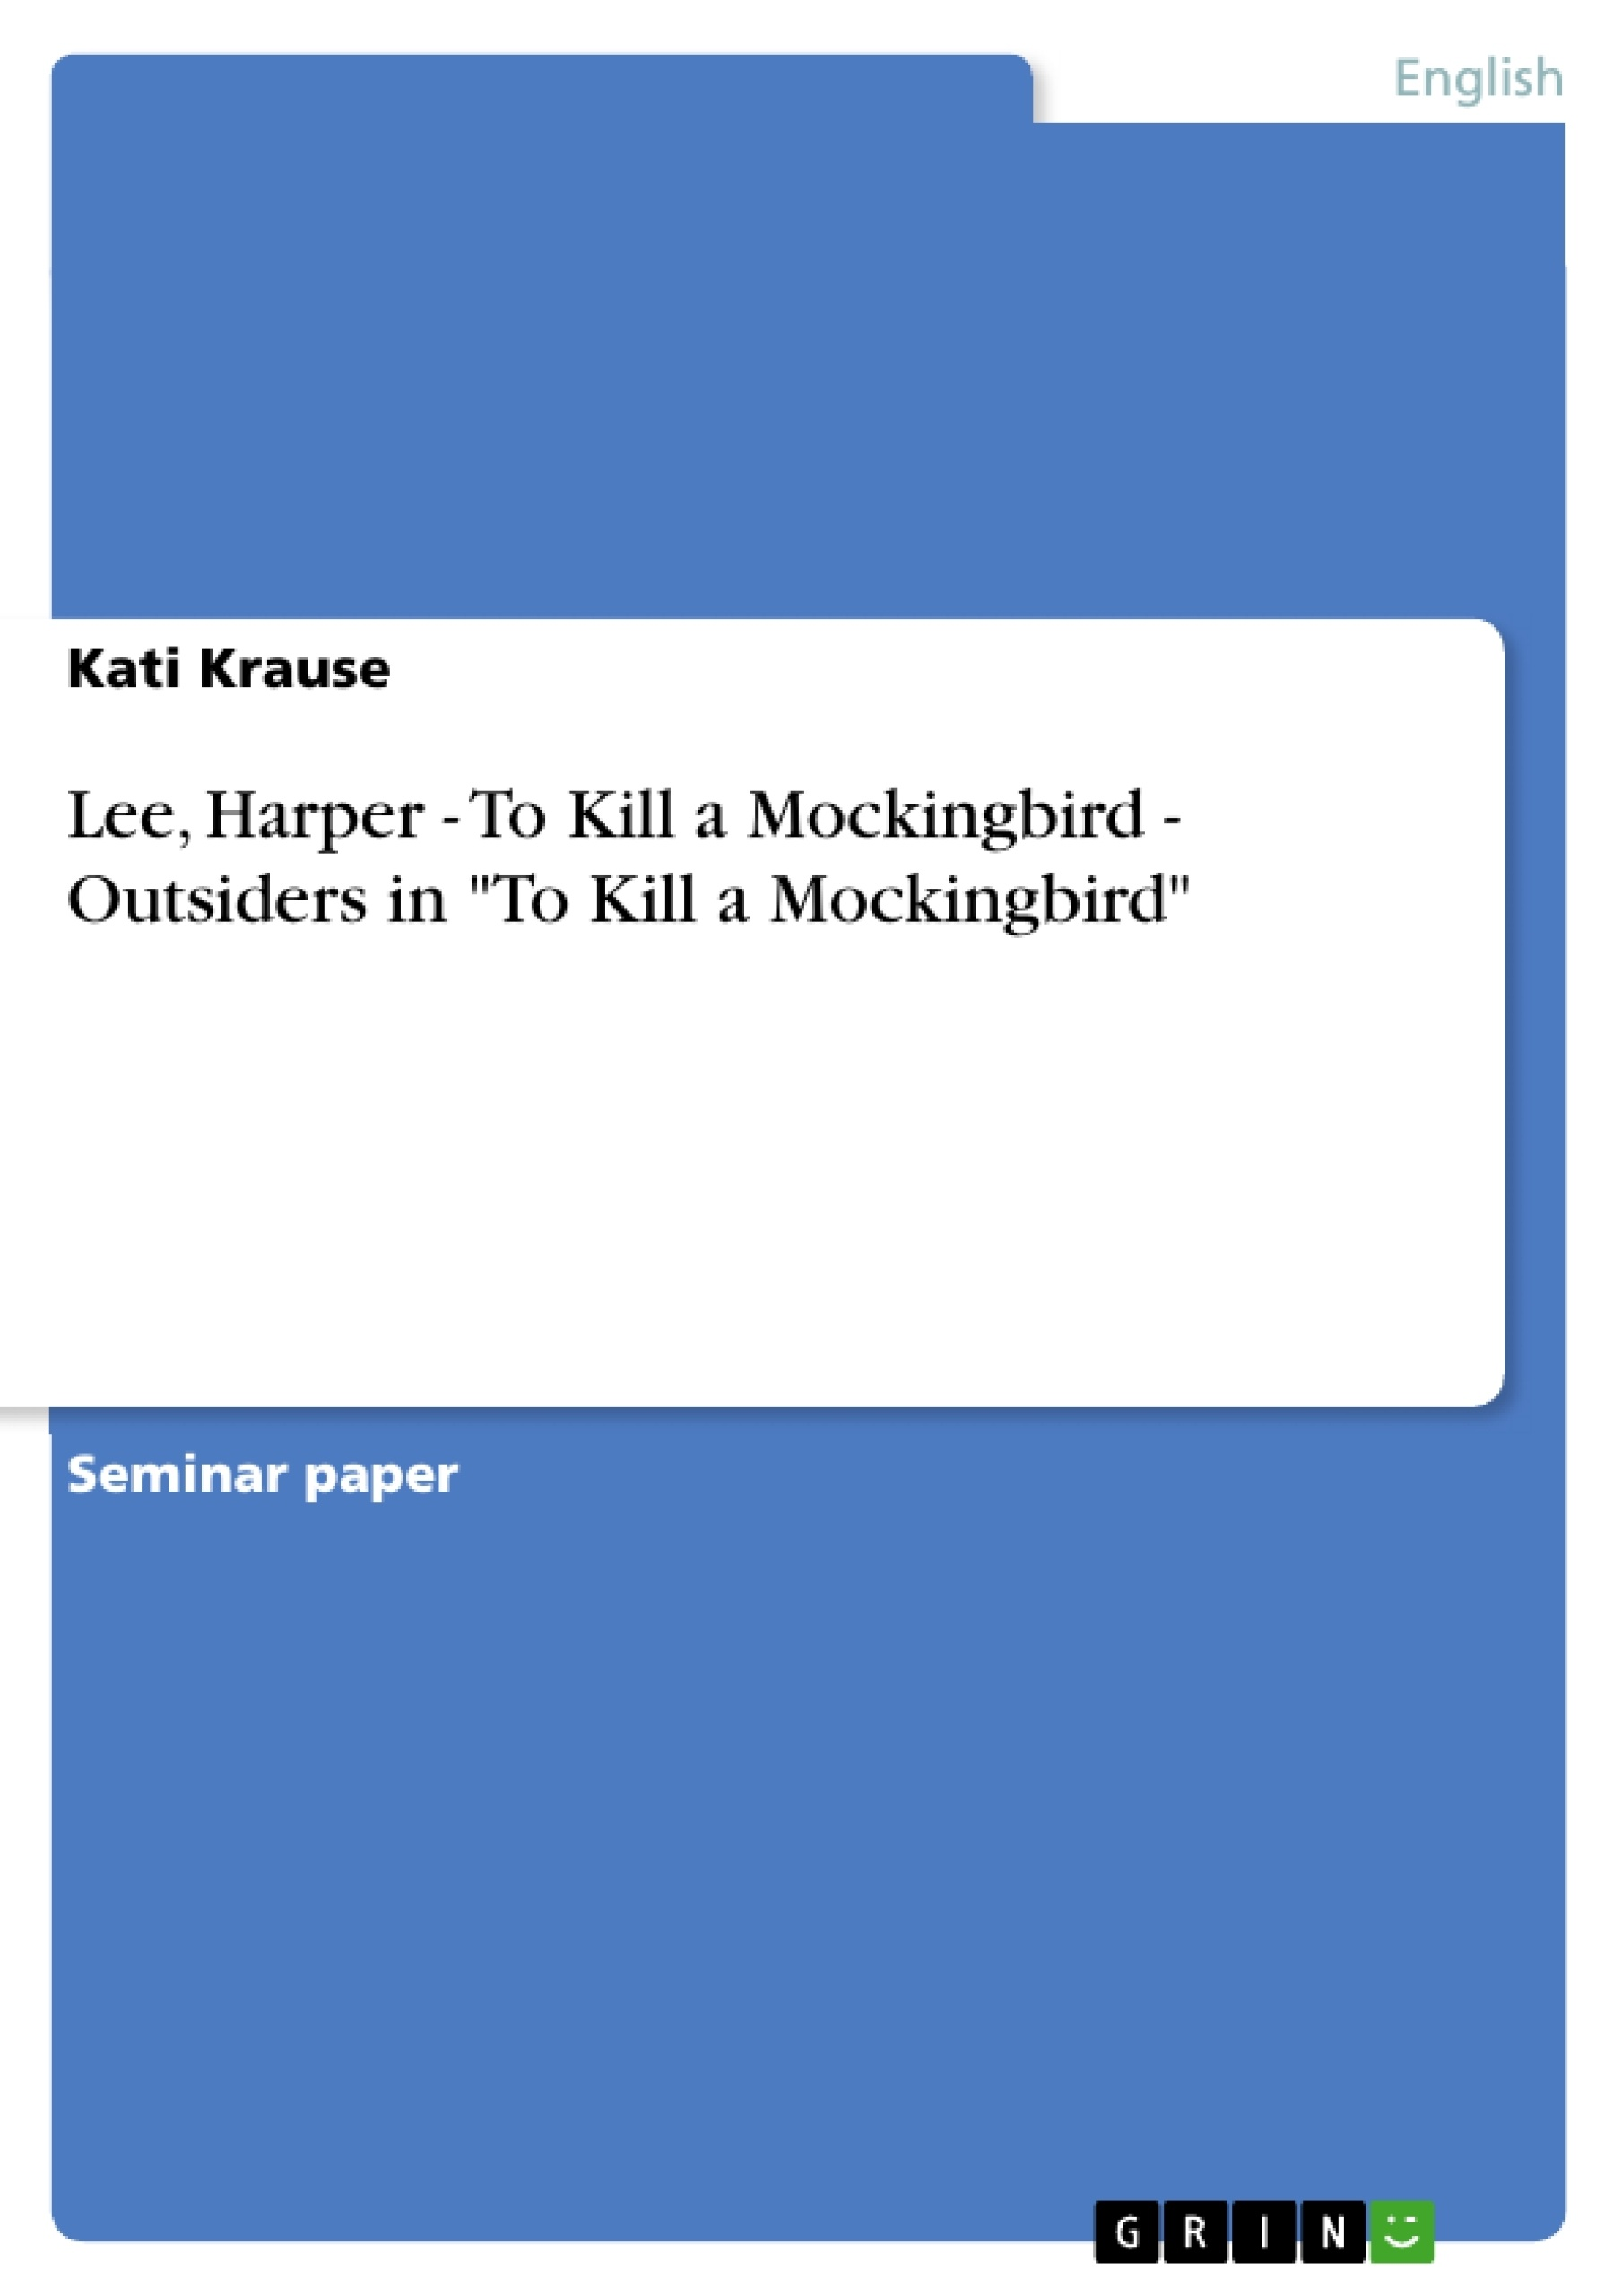 to kill a mockingbird character analysis essay best ideas about  lee harper to kill a mockingbird outsiders in to kill a upload your own papers earn character analysis sample essay